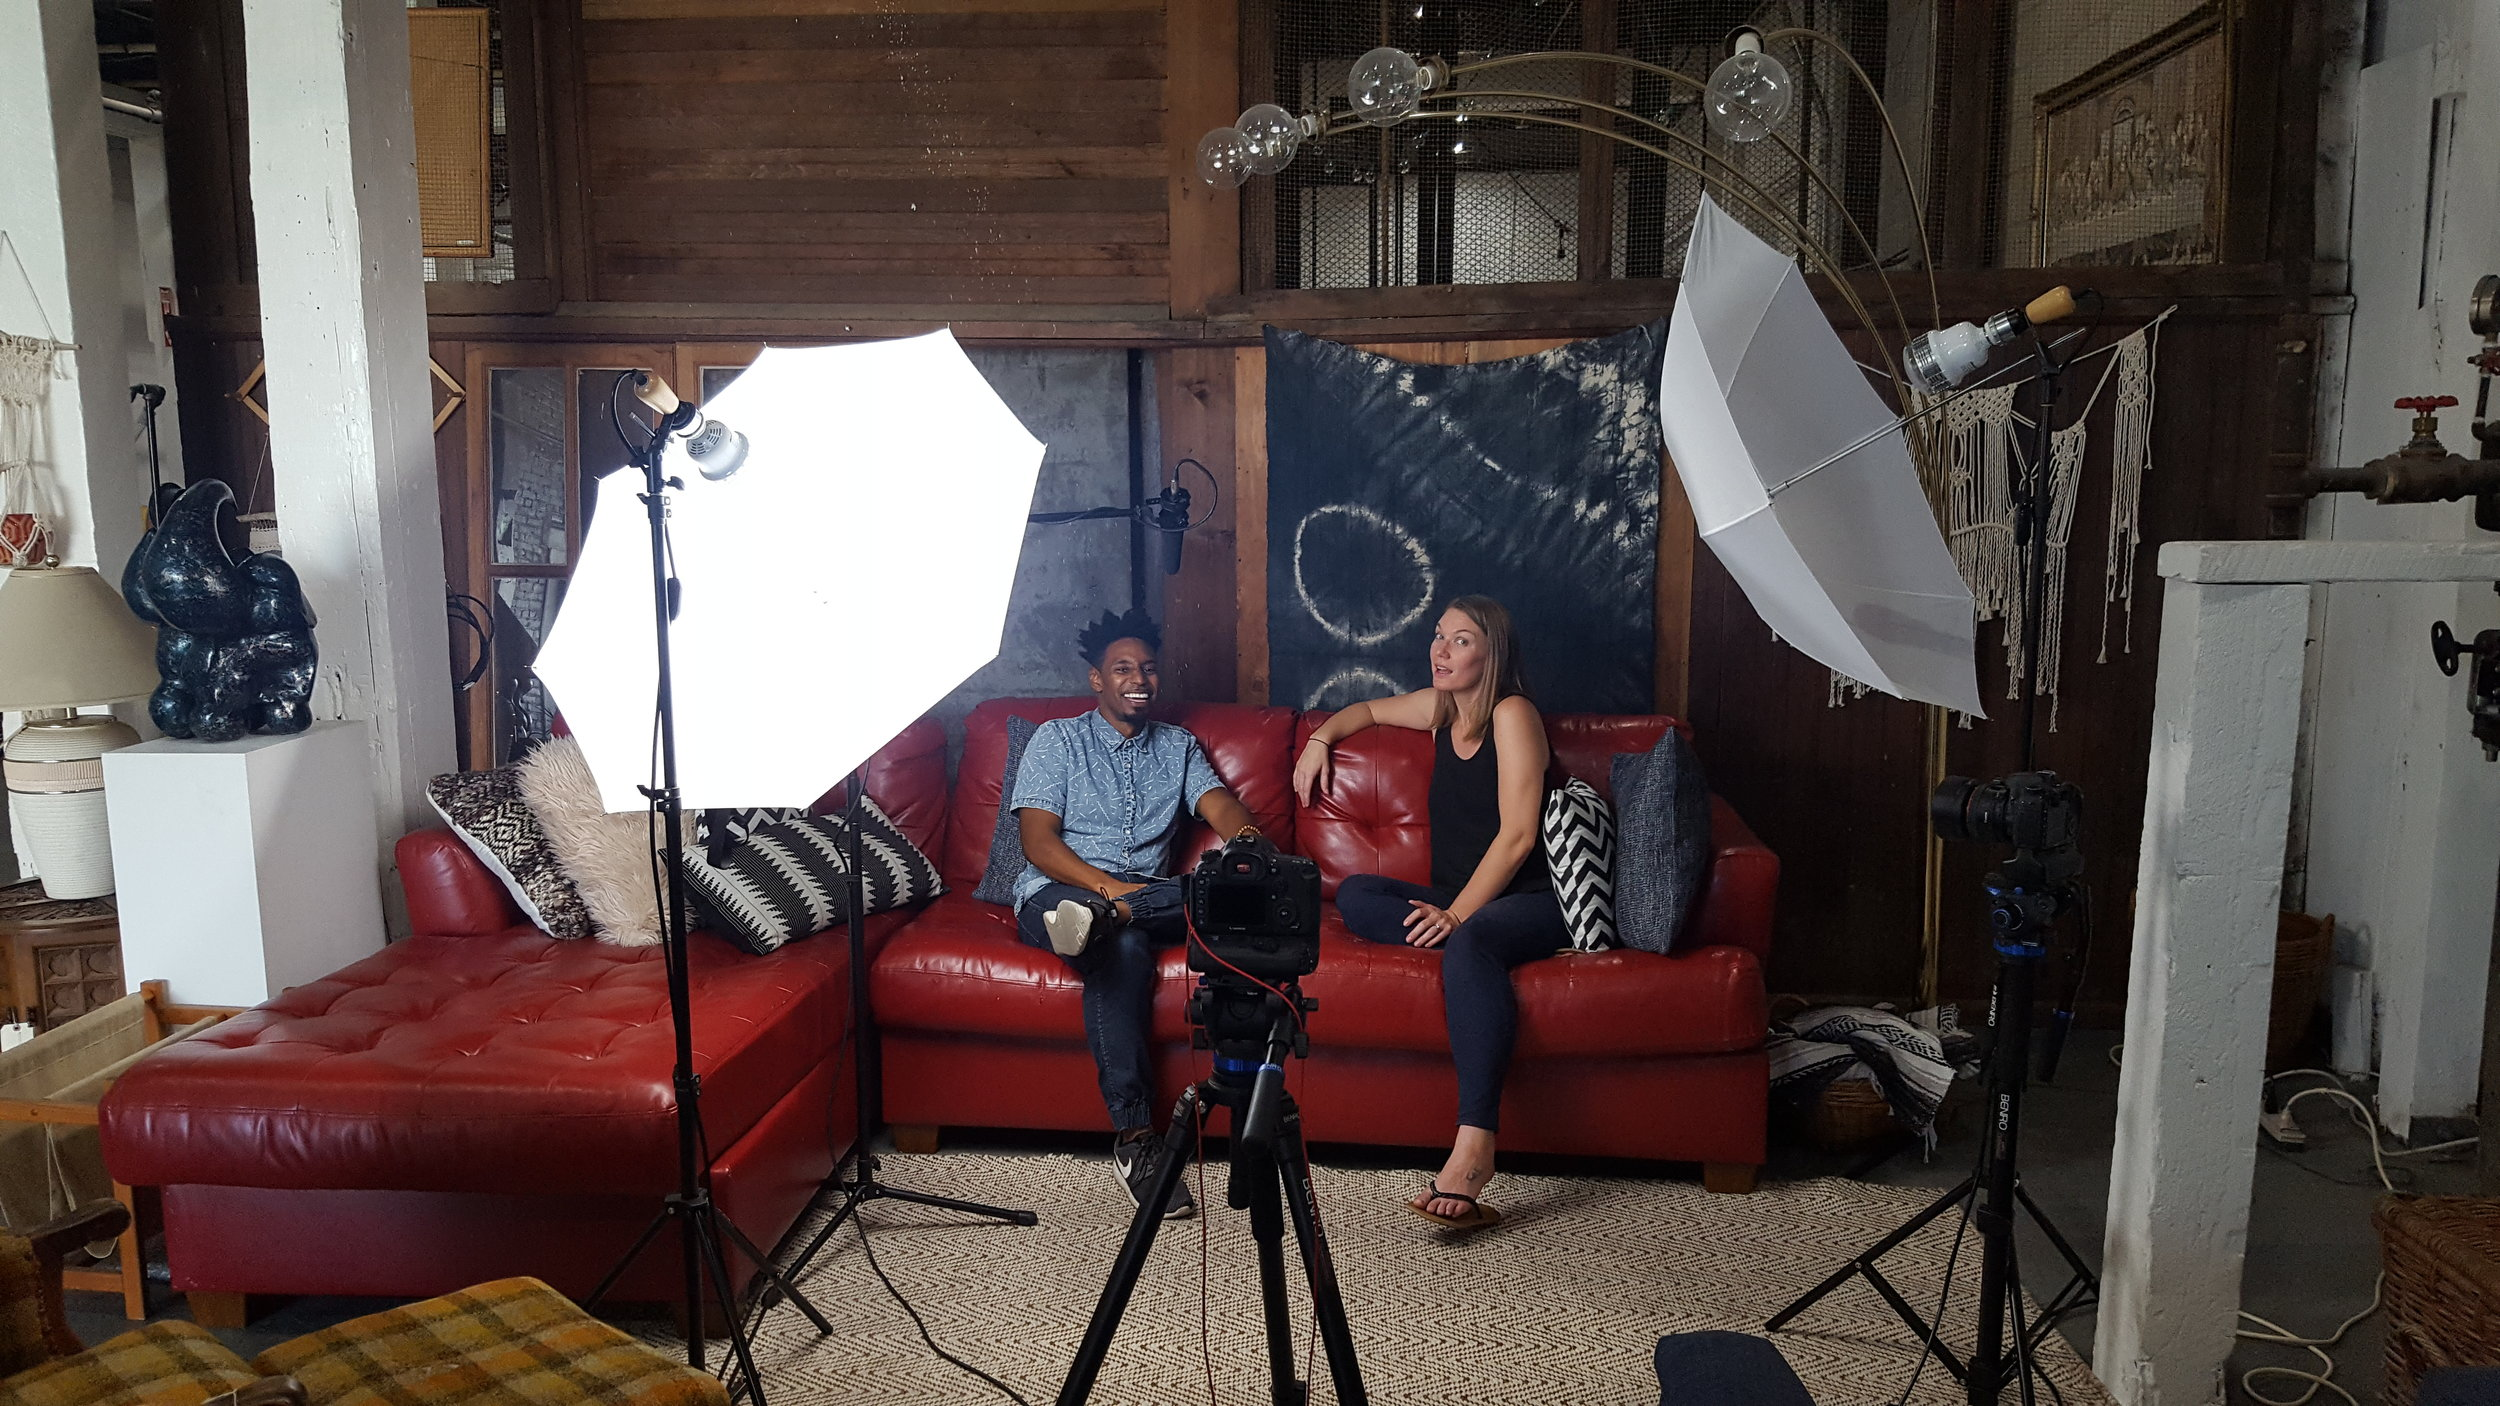 Interviewed by Rachael Parker-Chavez of Defining: Good - The Human Side of Business & Relationships: During this video interview, we jumped all into discussing social entrepreneurship, mentorship, and intentional relationship building!